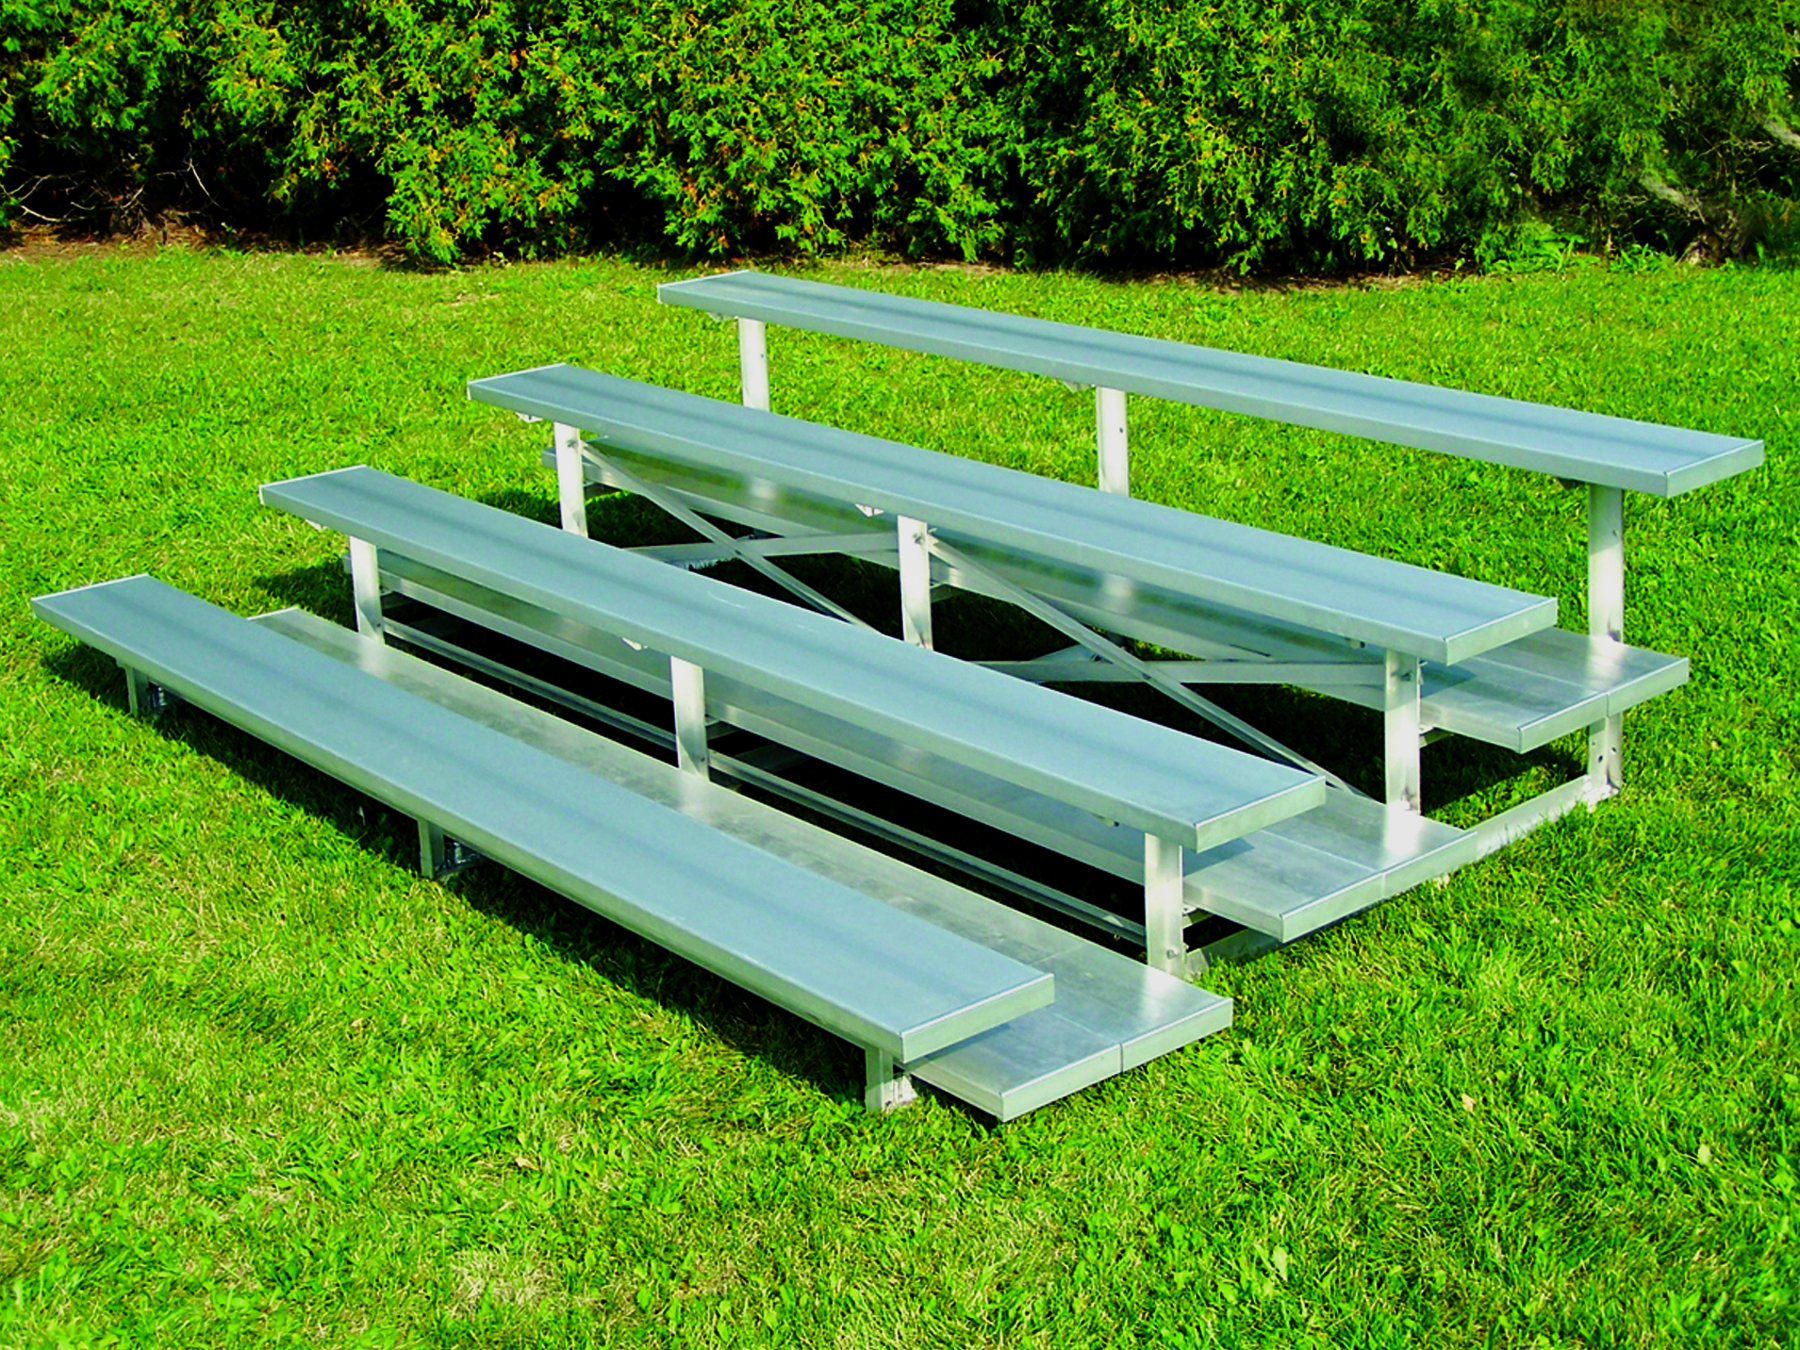 bleachers with wide foot planks